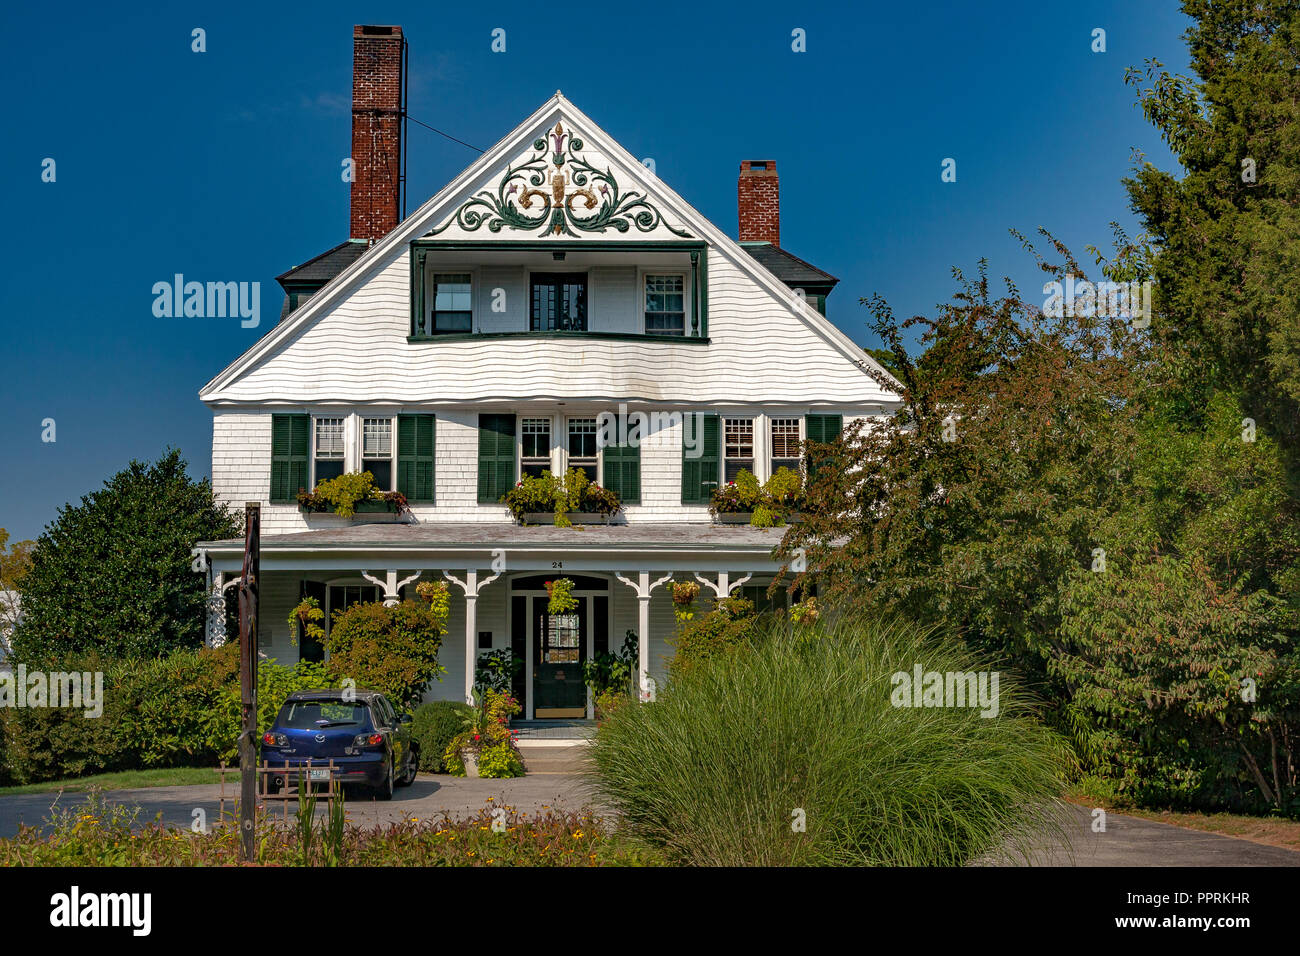 White wooden house with green shutters and a balcony built into the gable complete with design on the front gable, Kay St ,Newport Rhode Island, USA - Stock Image